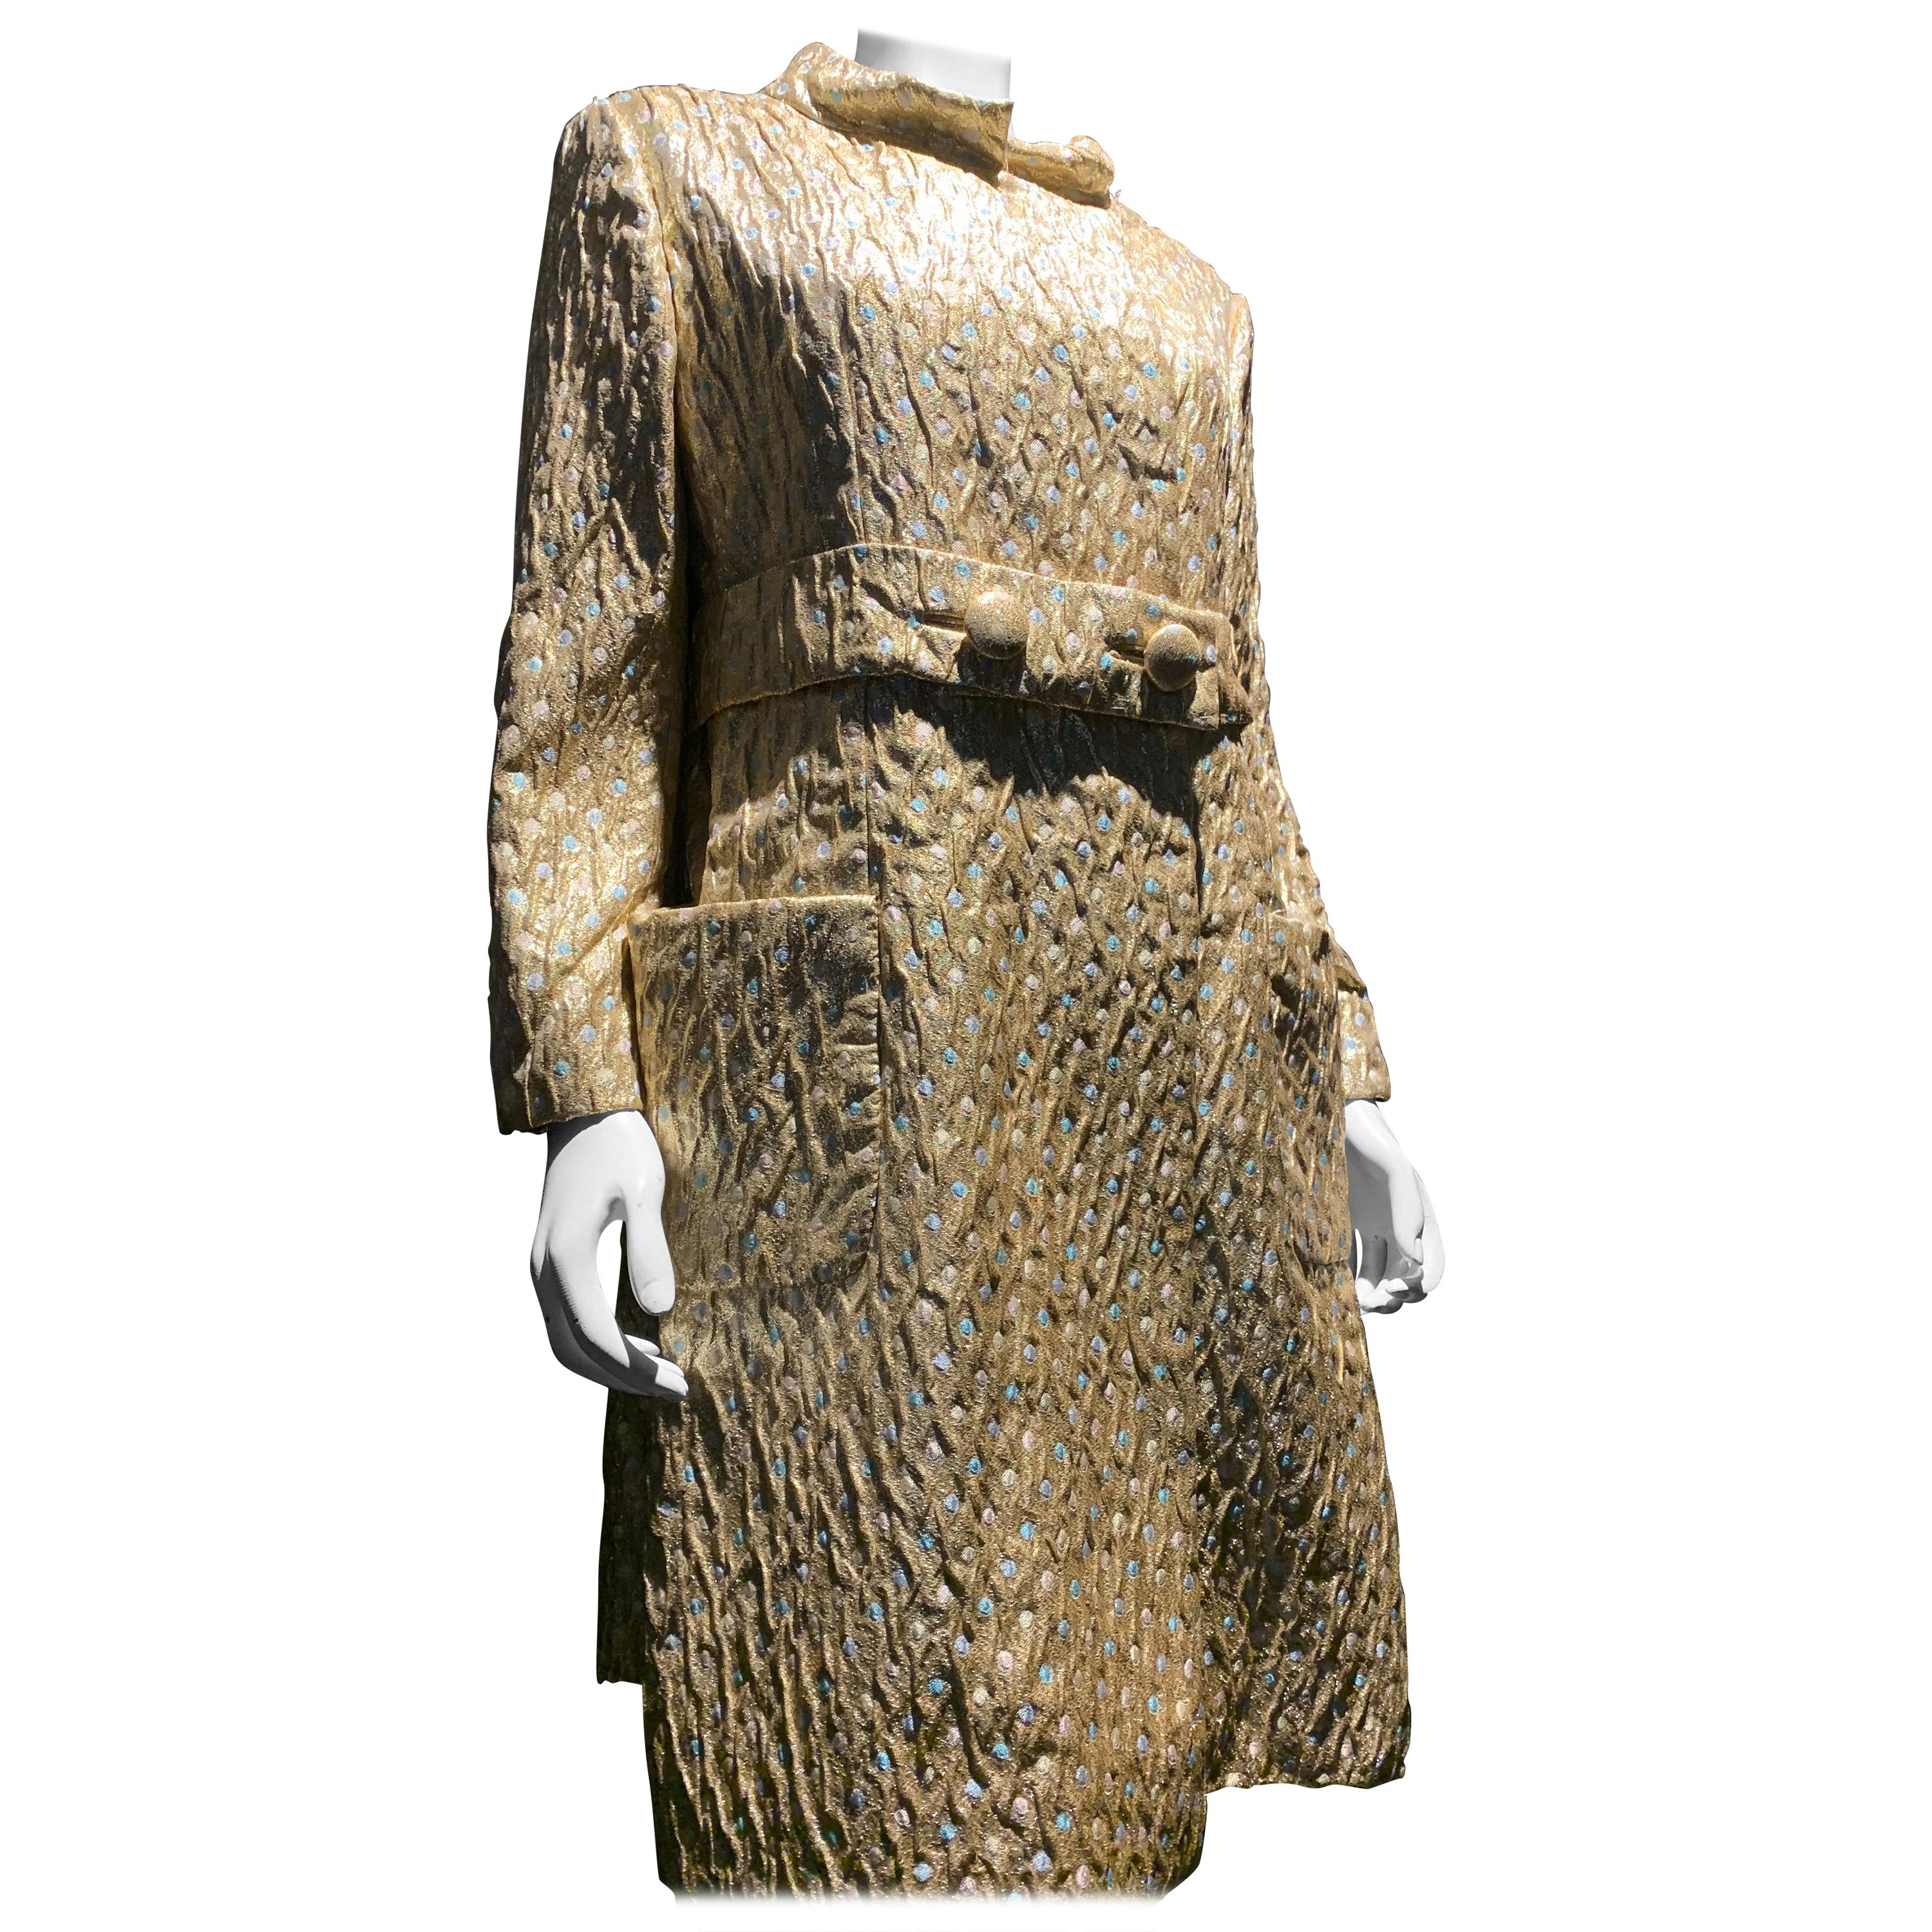 1960s Chester Weinberg Gold Lame and Pastel Brocade Evening Coat Ensemble